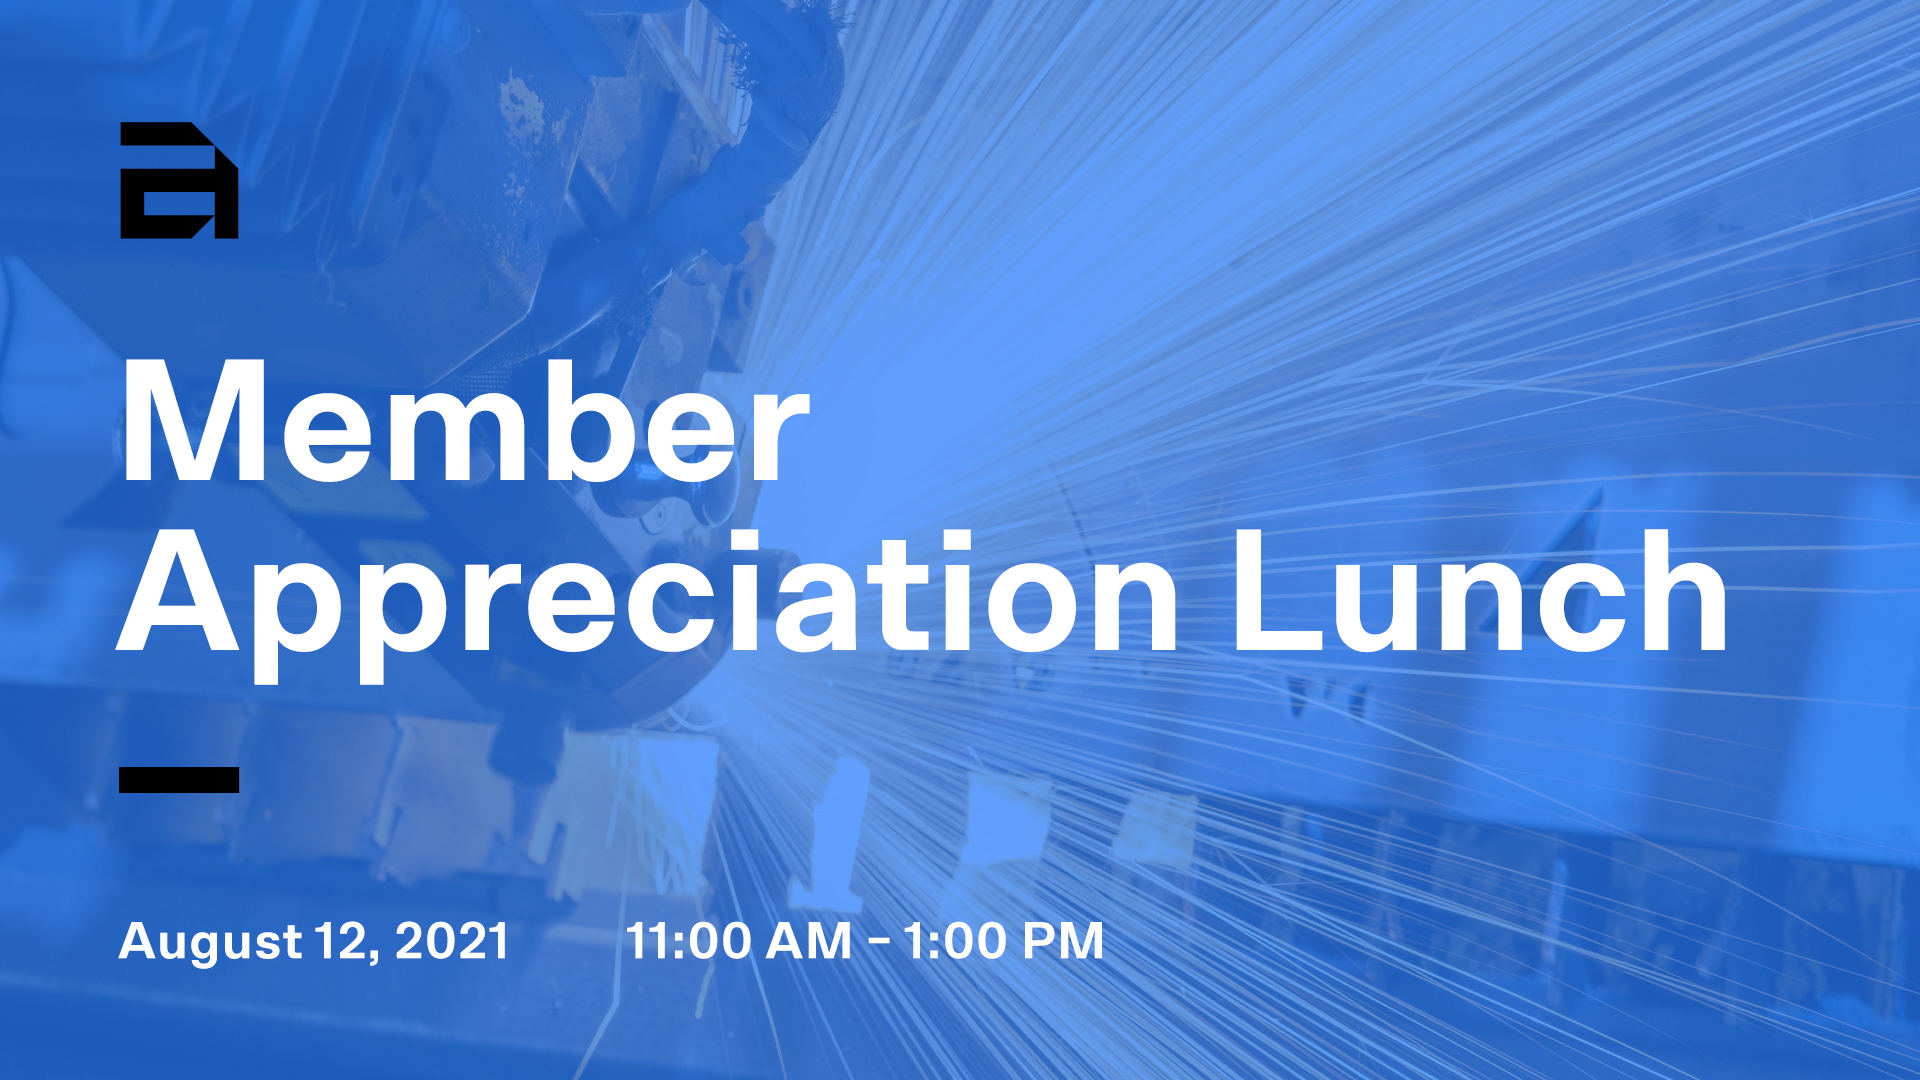 Automation Alley Member Appreciation Lunch